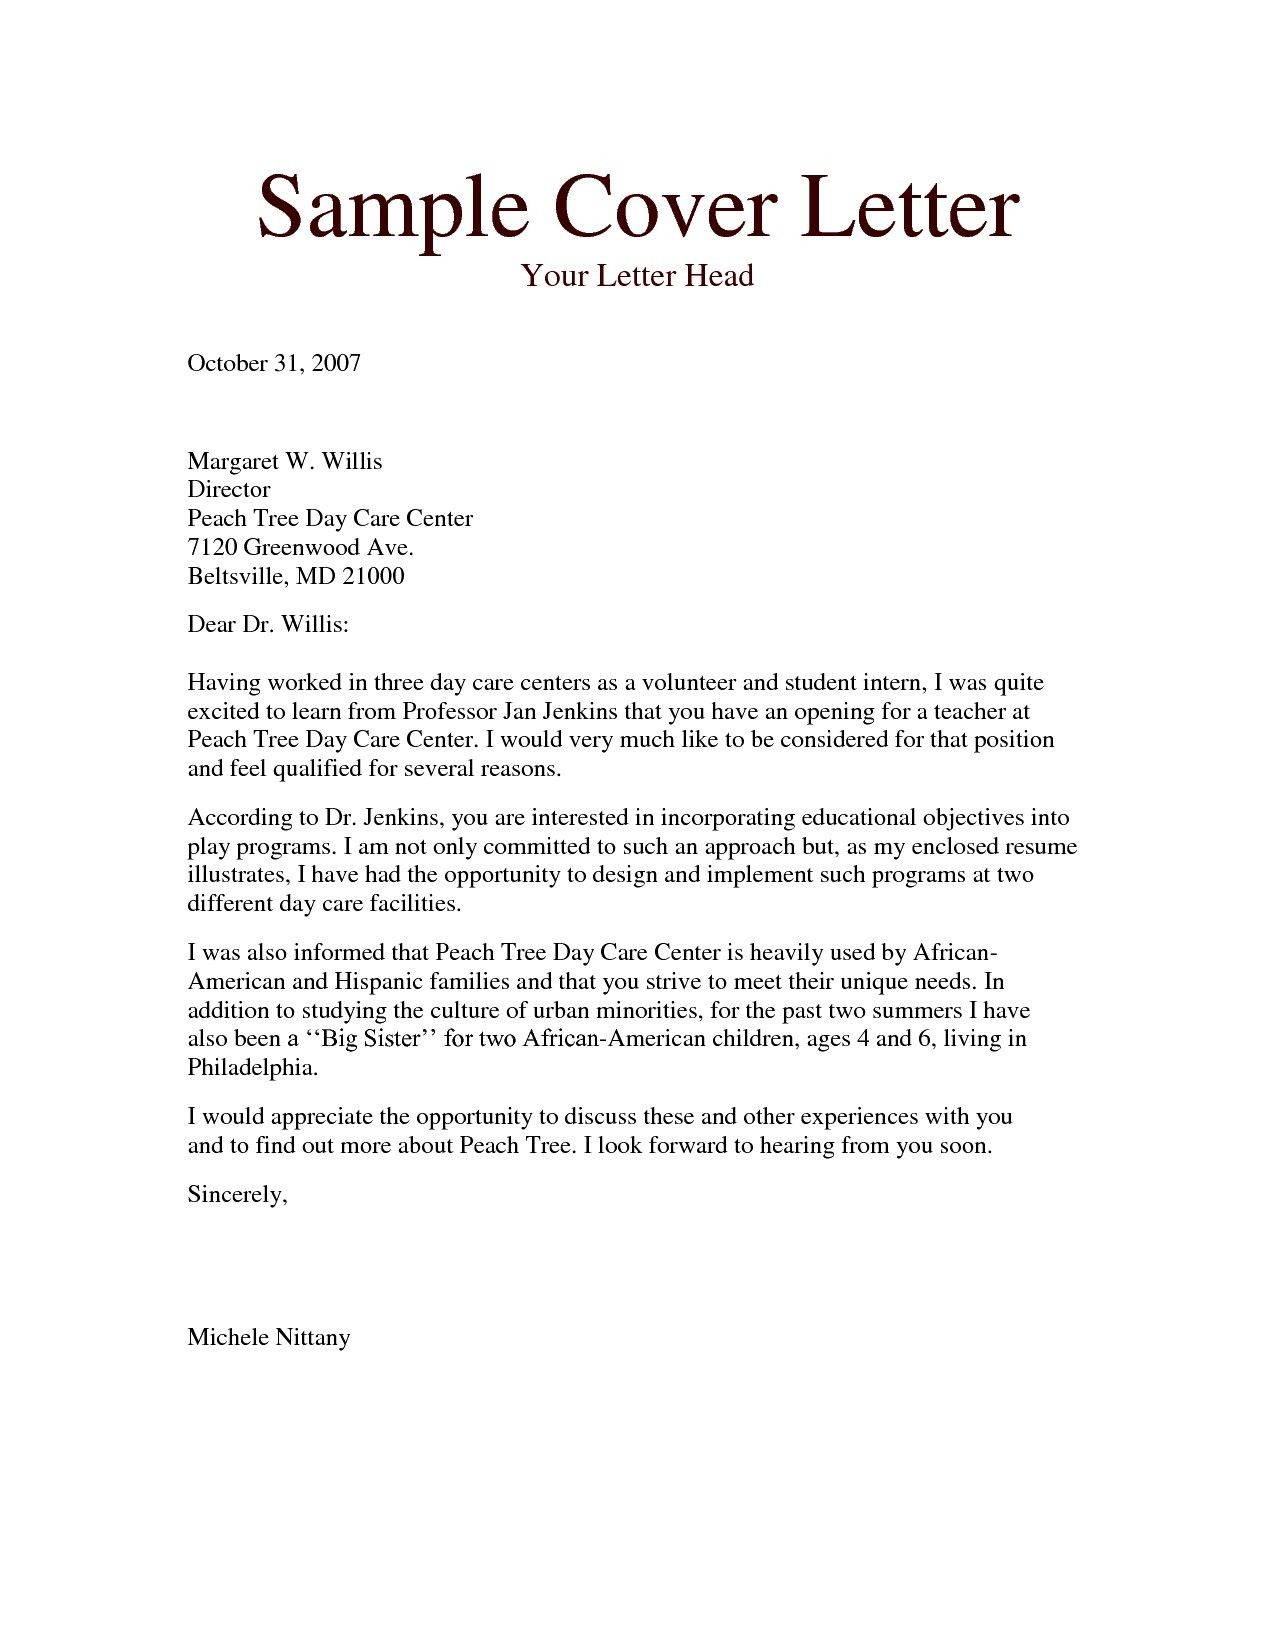 New Application Letter For Lecturer Job You Can Download For Full Letter Resume Template Here H Cover Letter Teacher Job Cover Letter Cover Letter For Resume